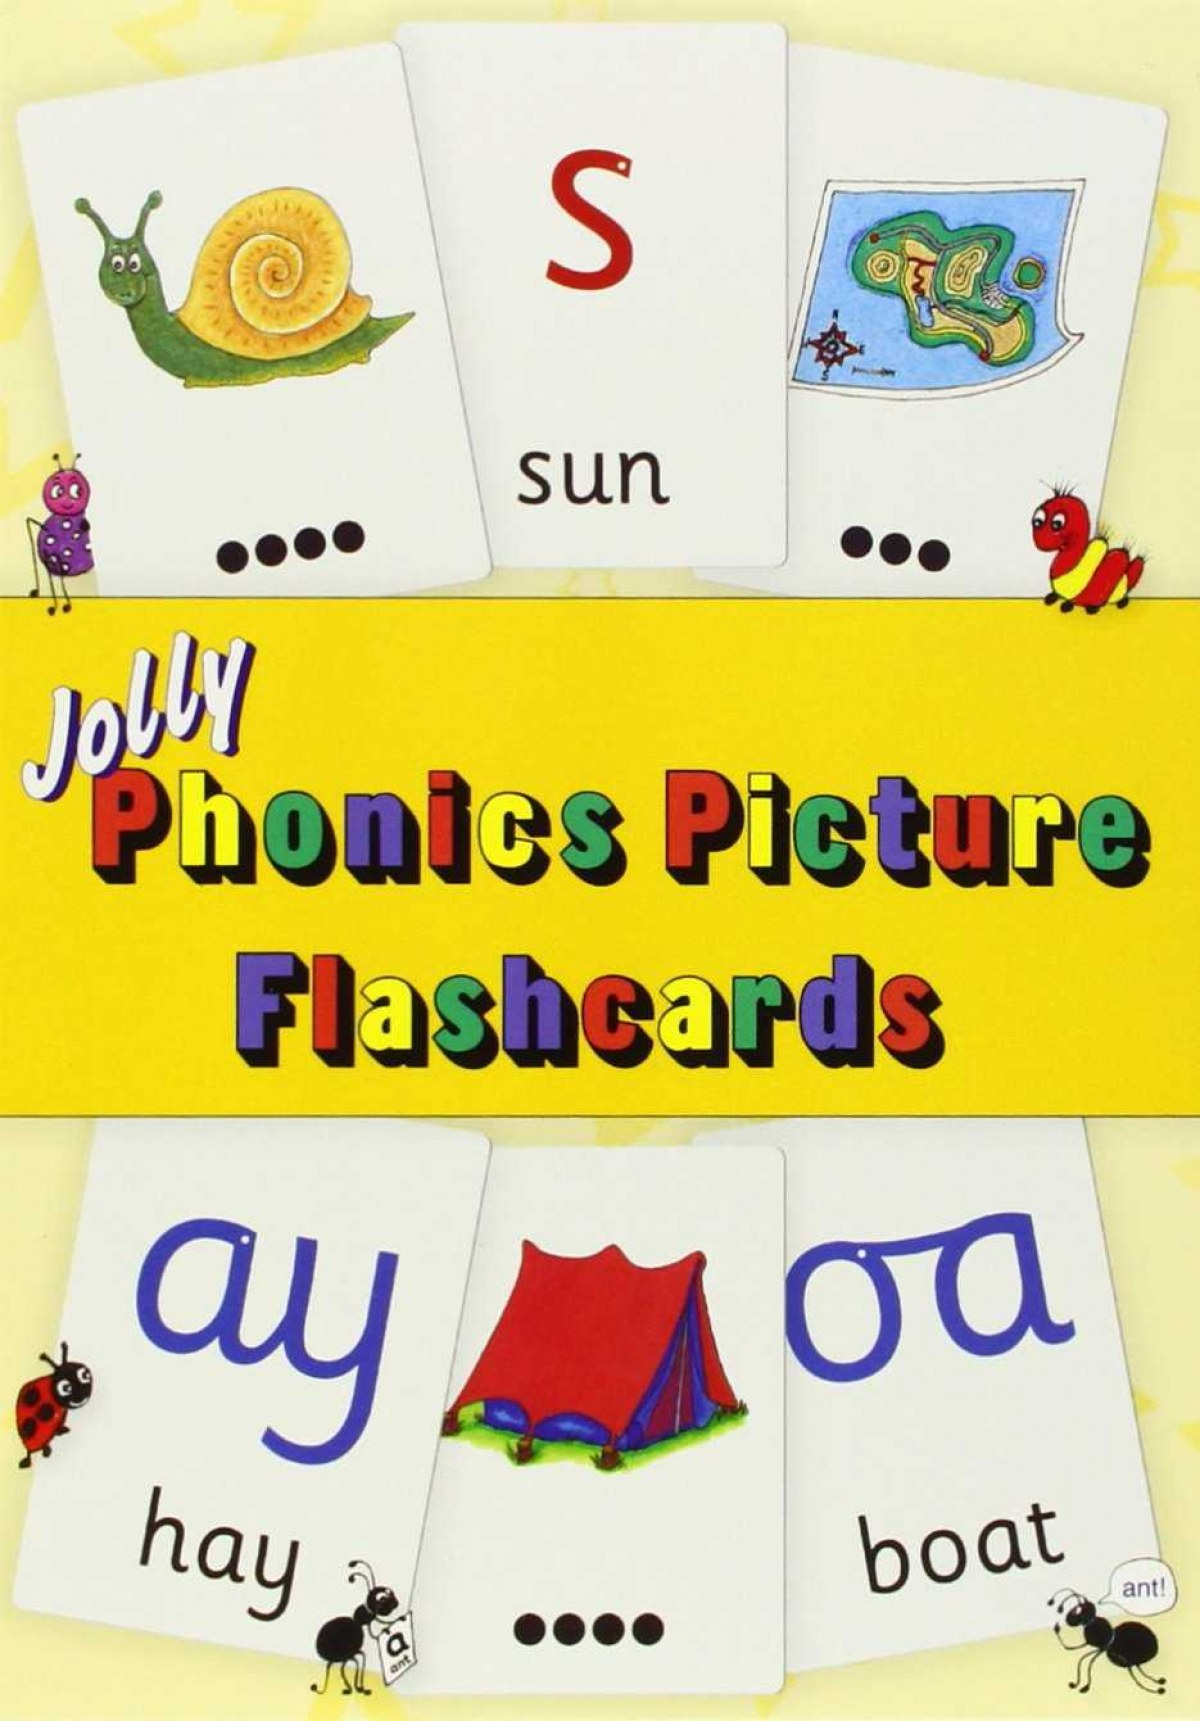 Jolly flash cards